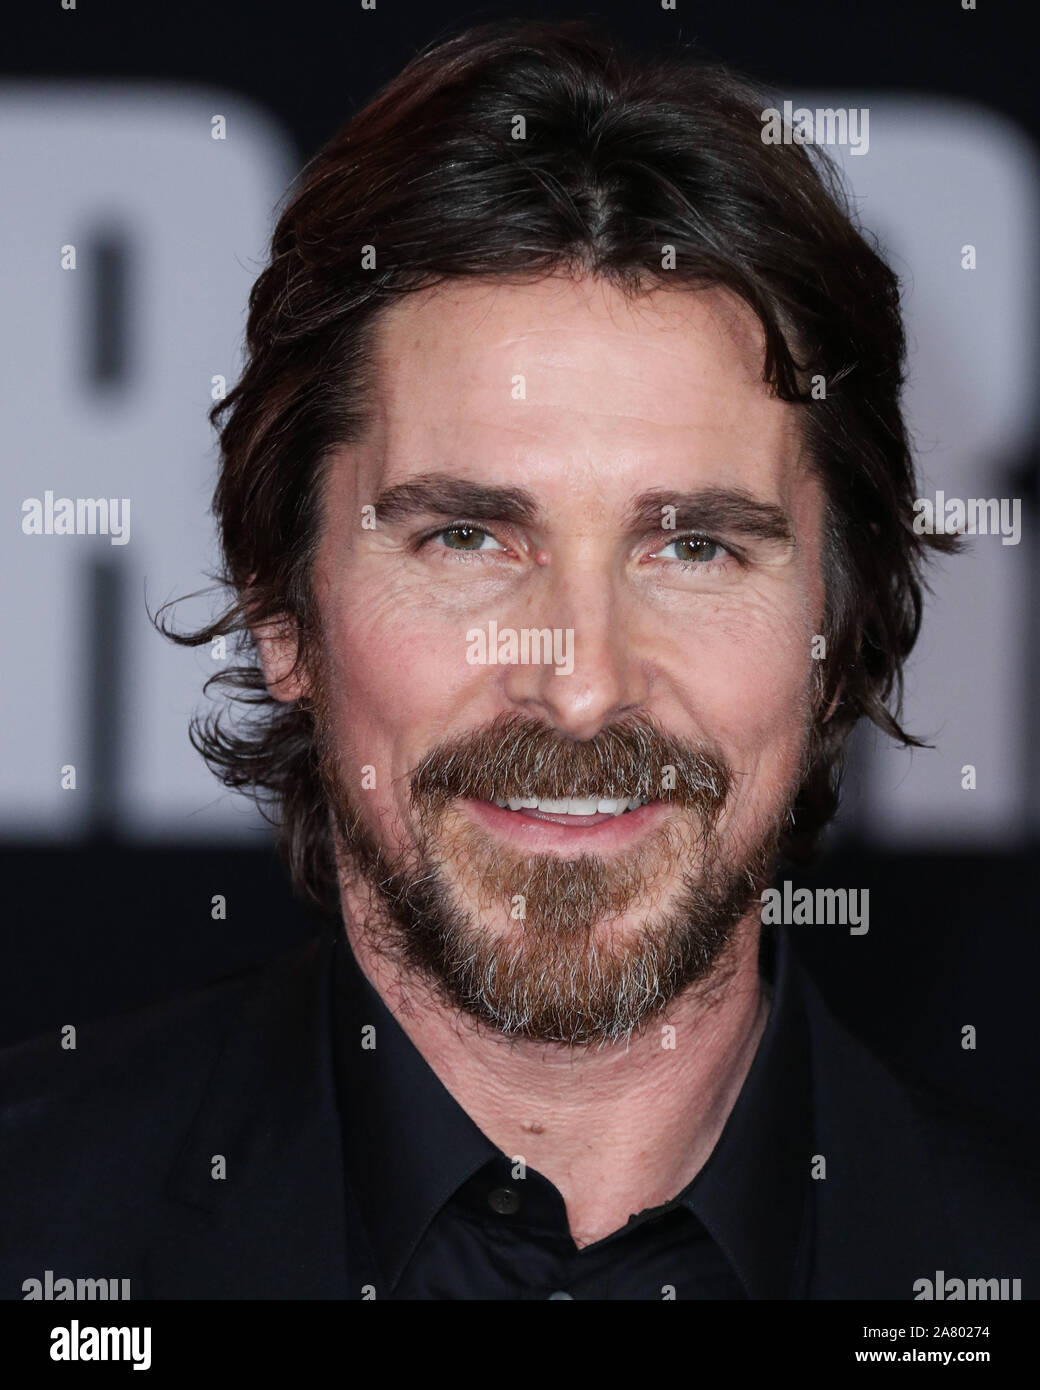 Hollywood Los Angeles California Usa November 04 Actor Christian Bale Arrives At The Los Angeles Premiere Of 20th Century Fox S Ford V Ferrari Held At The Tcl Chinese Theatre Imax On